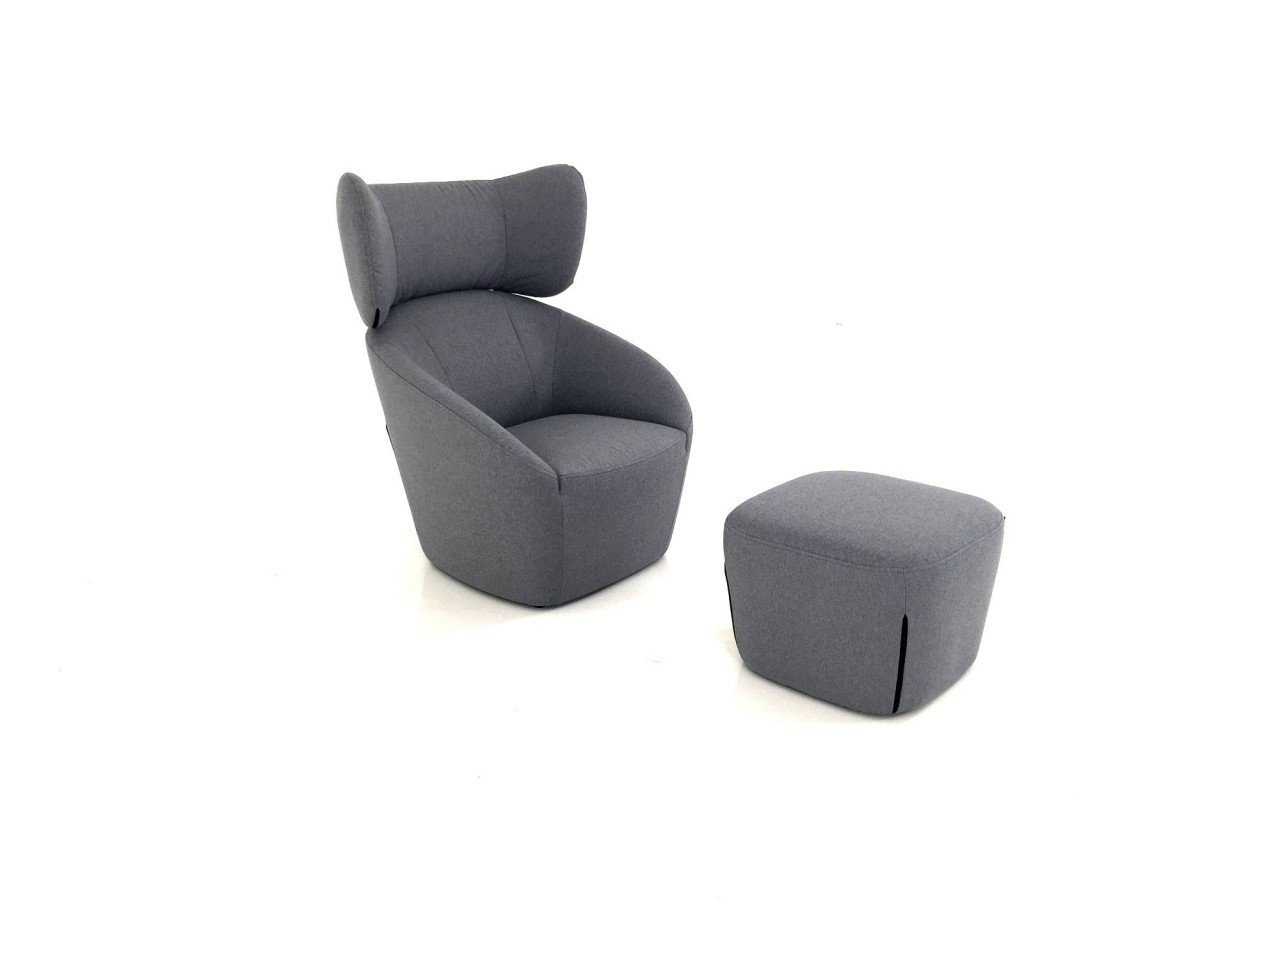 Sessel Stoff Mit Hocker Freistil 178 Rolf Benz Hochlehn Sessel Mit Hocker In Stoff Blaugrau